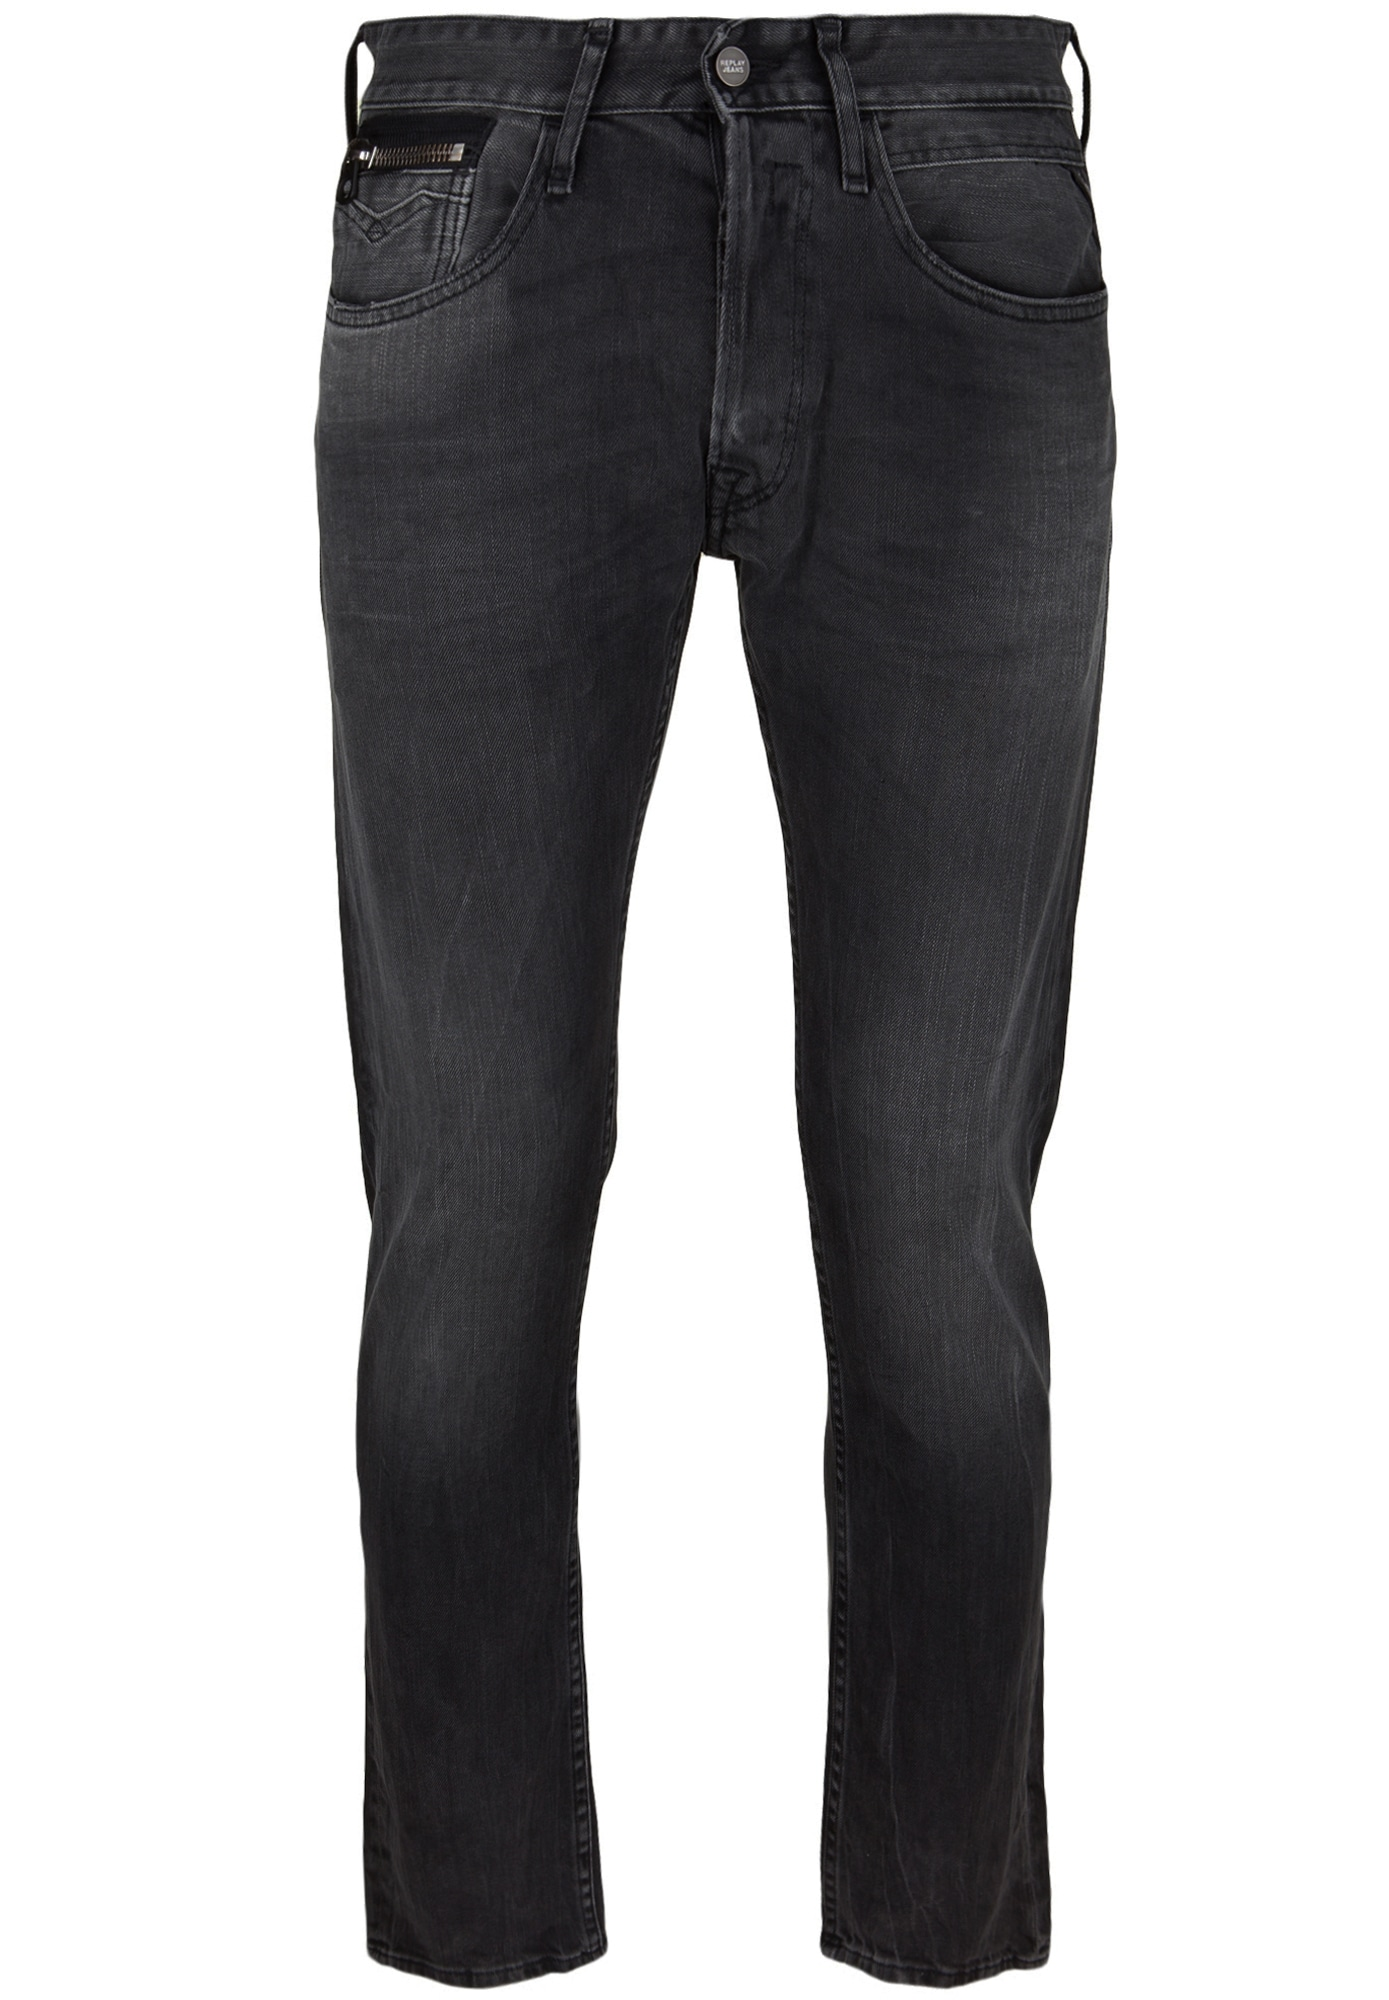 REPLAY Heren Jeans zwart